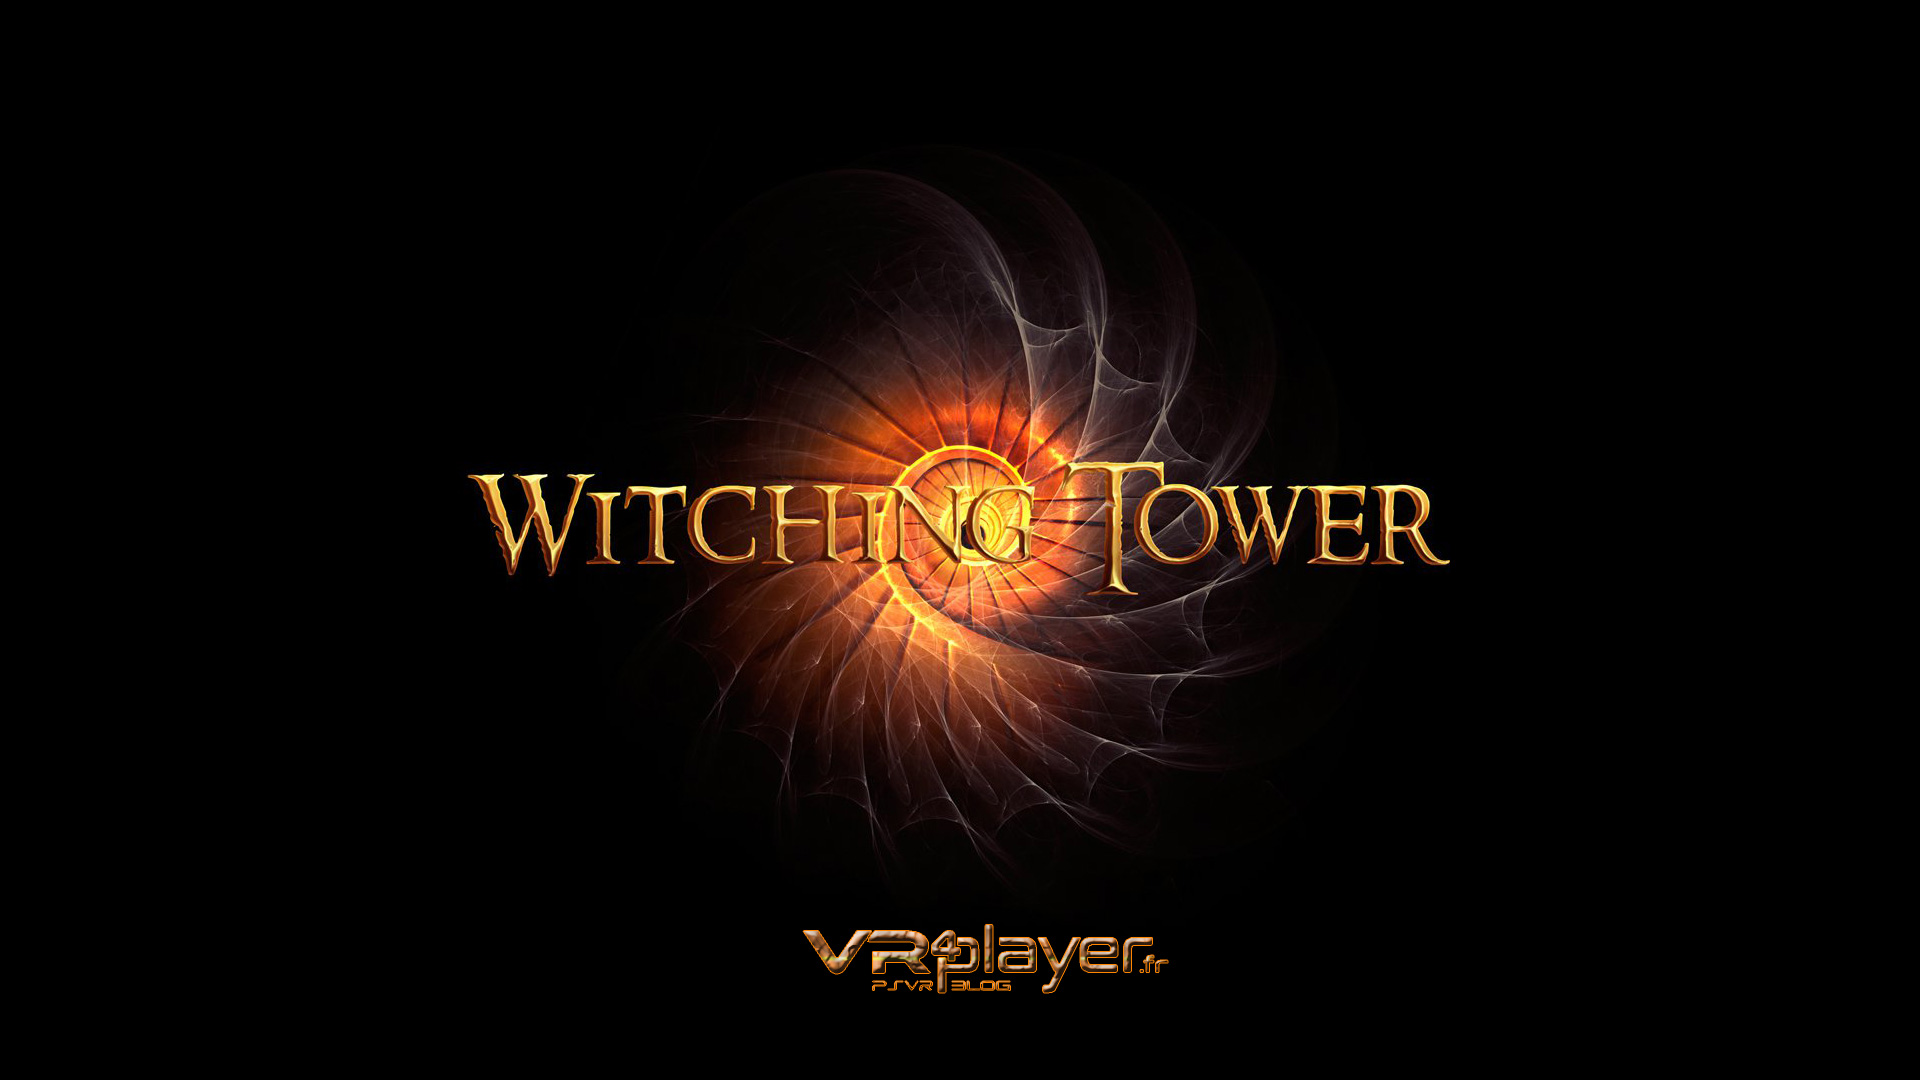 Witching Tower PSVR vrplayer.fr